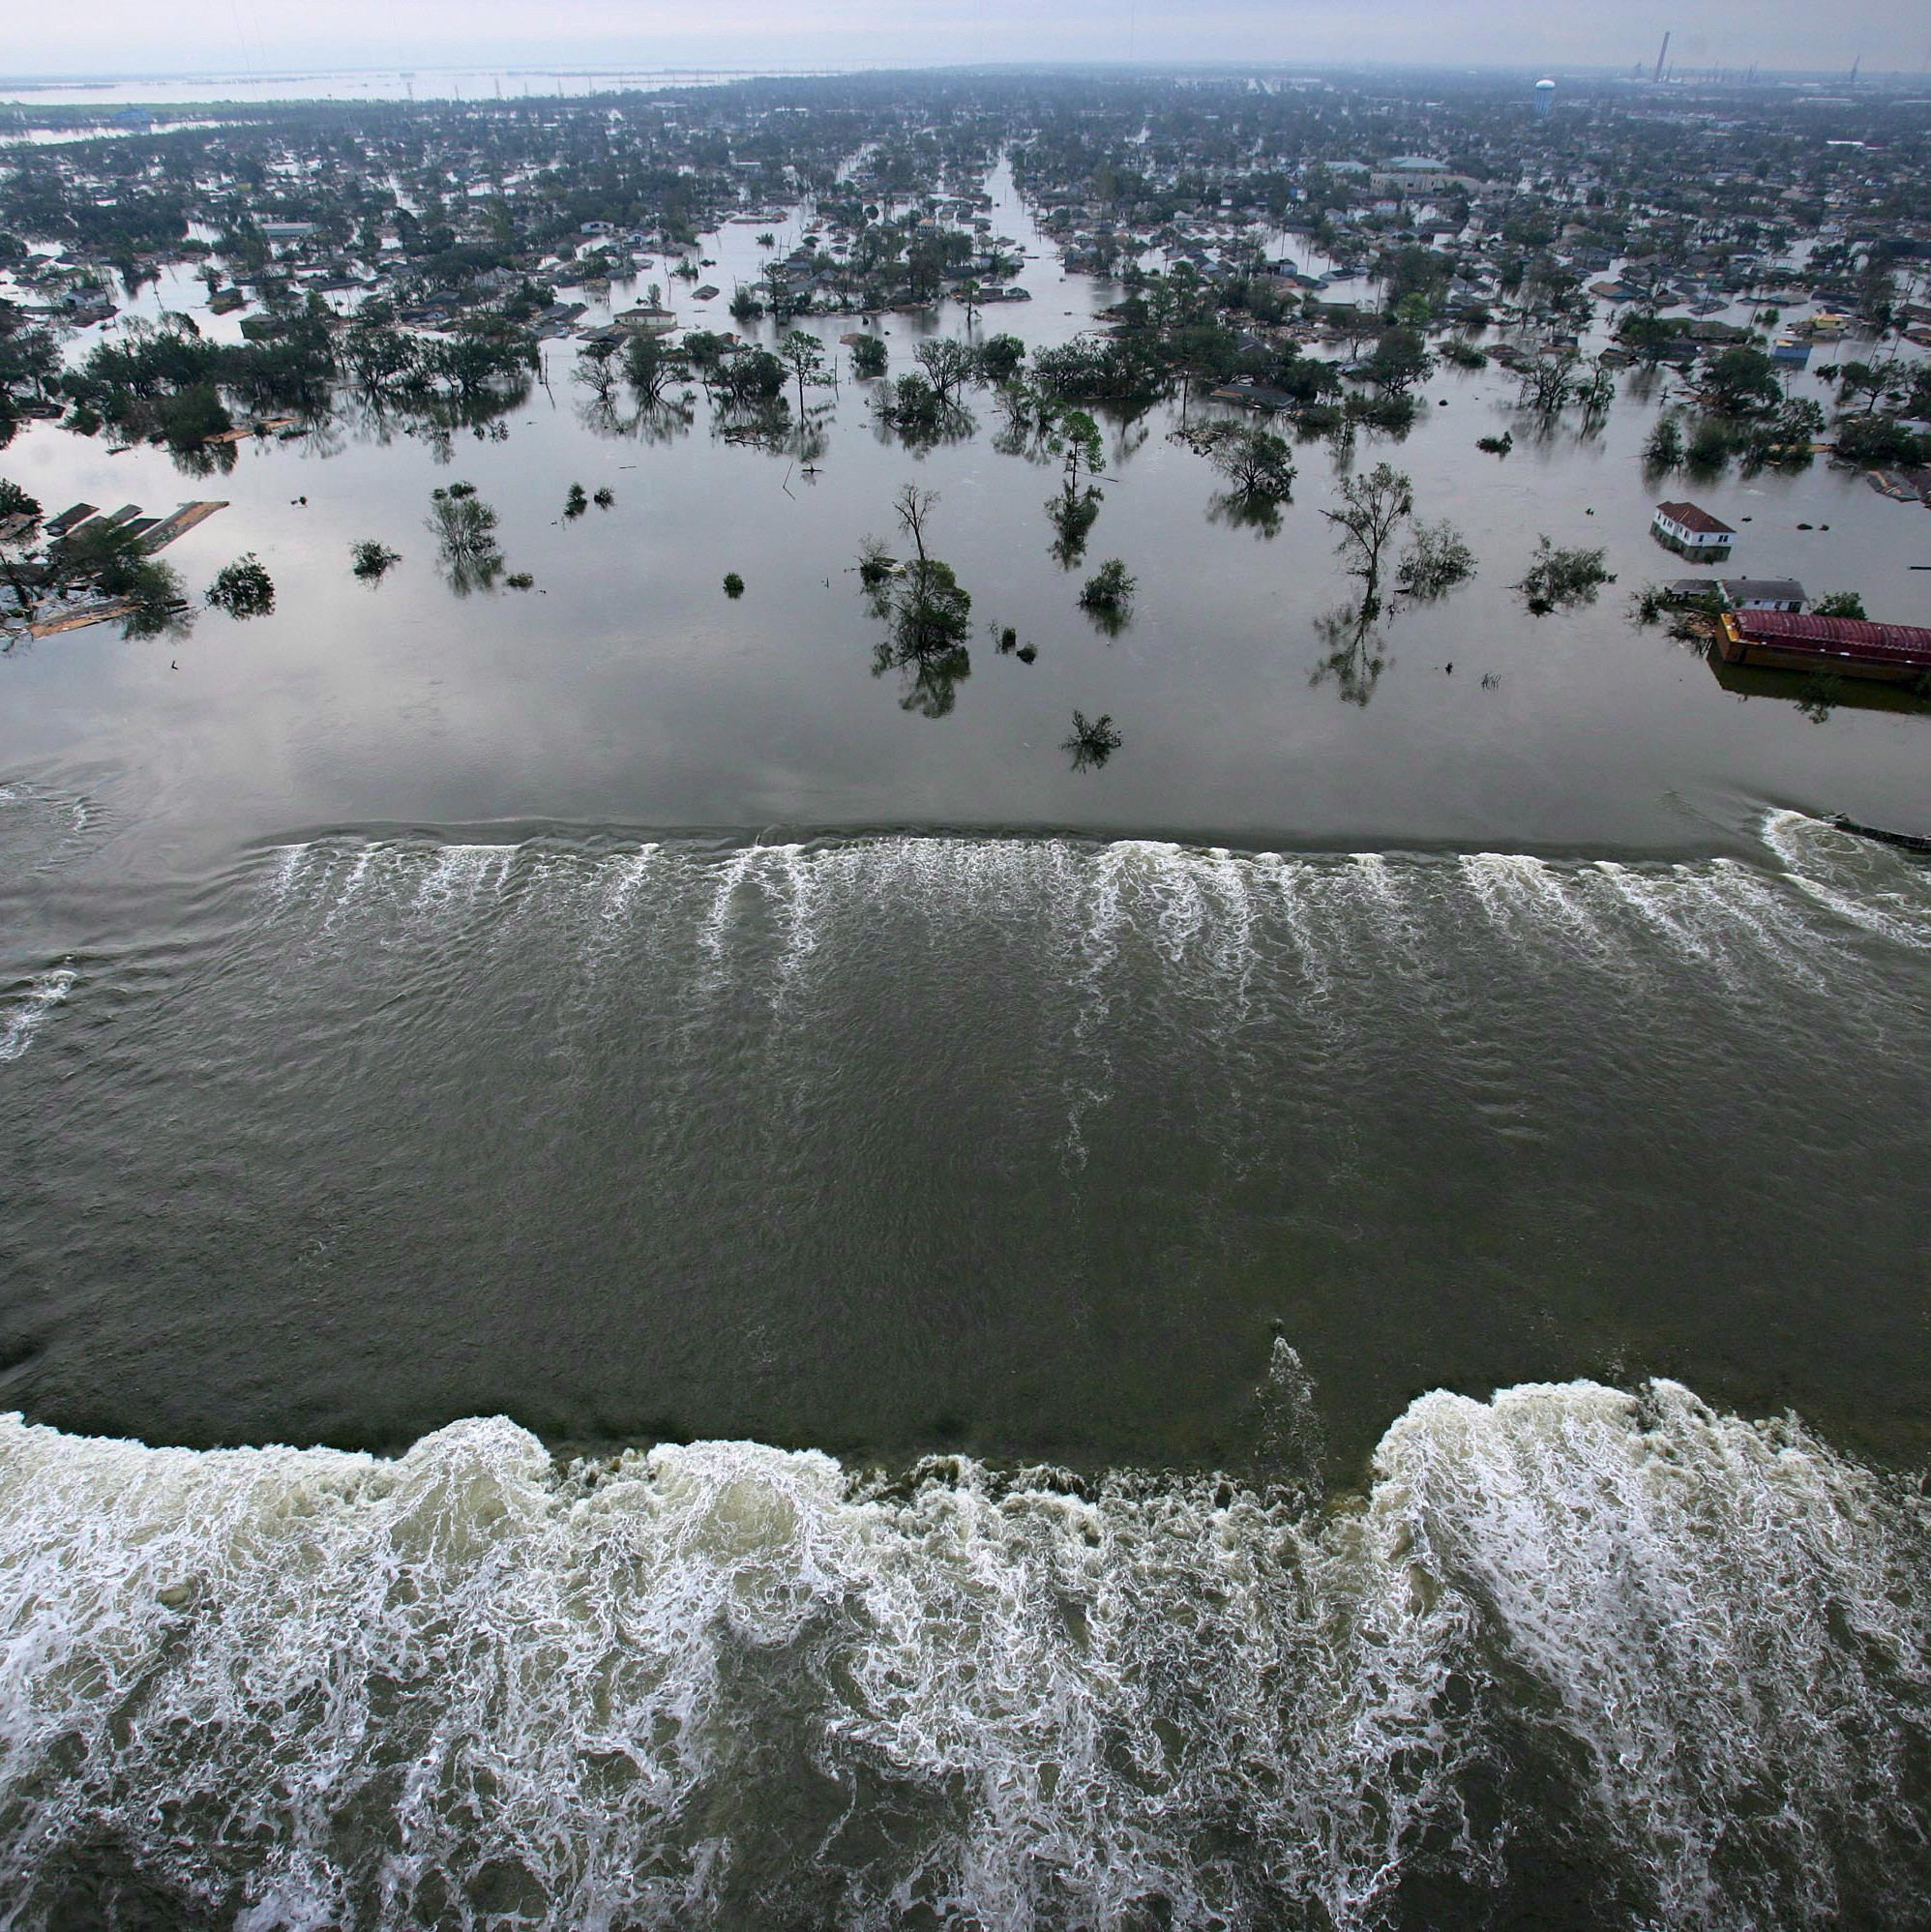 hurricane katrina global warming essay Hurricane katrina hurricane katrina was one of the deadliest hurricanes ever to hit the united states hurricane katrina started out as any other hurricane, as the result of warm moisture and air from the oceans surface that built into storm clouds and pushed around by strong forceful winds until it.